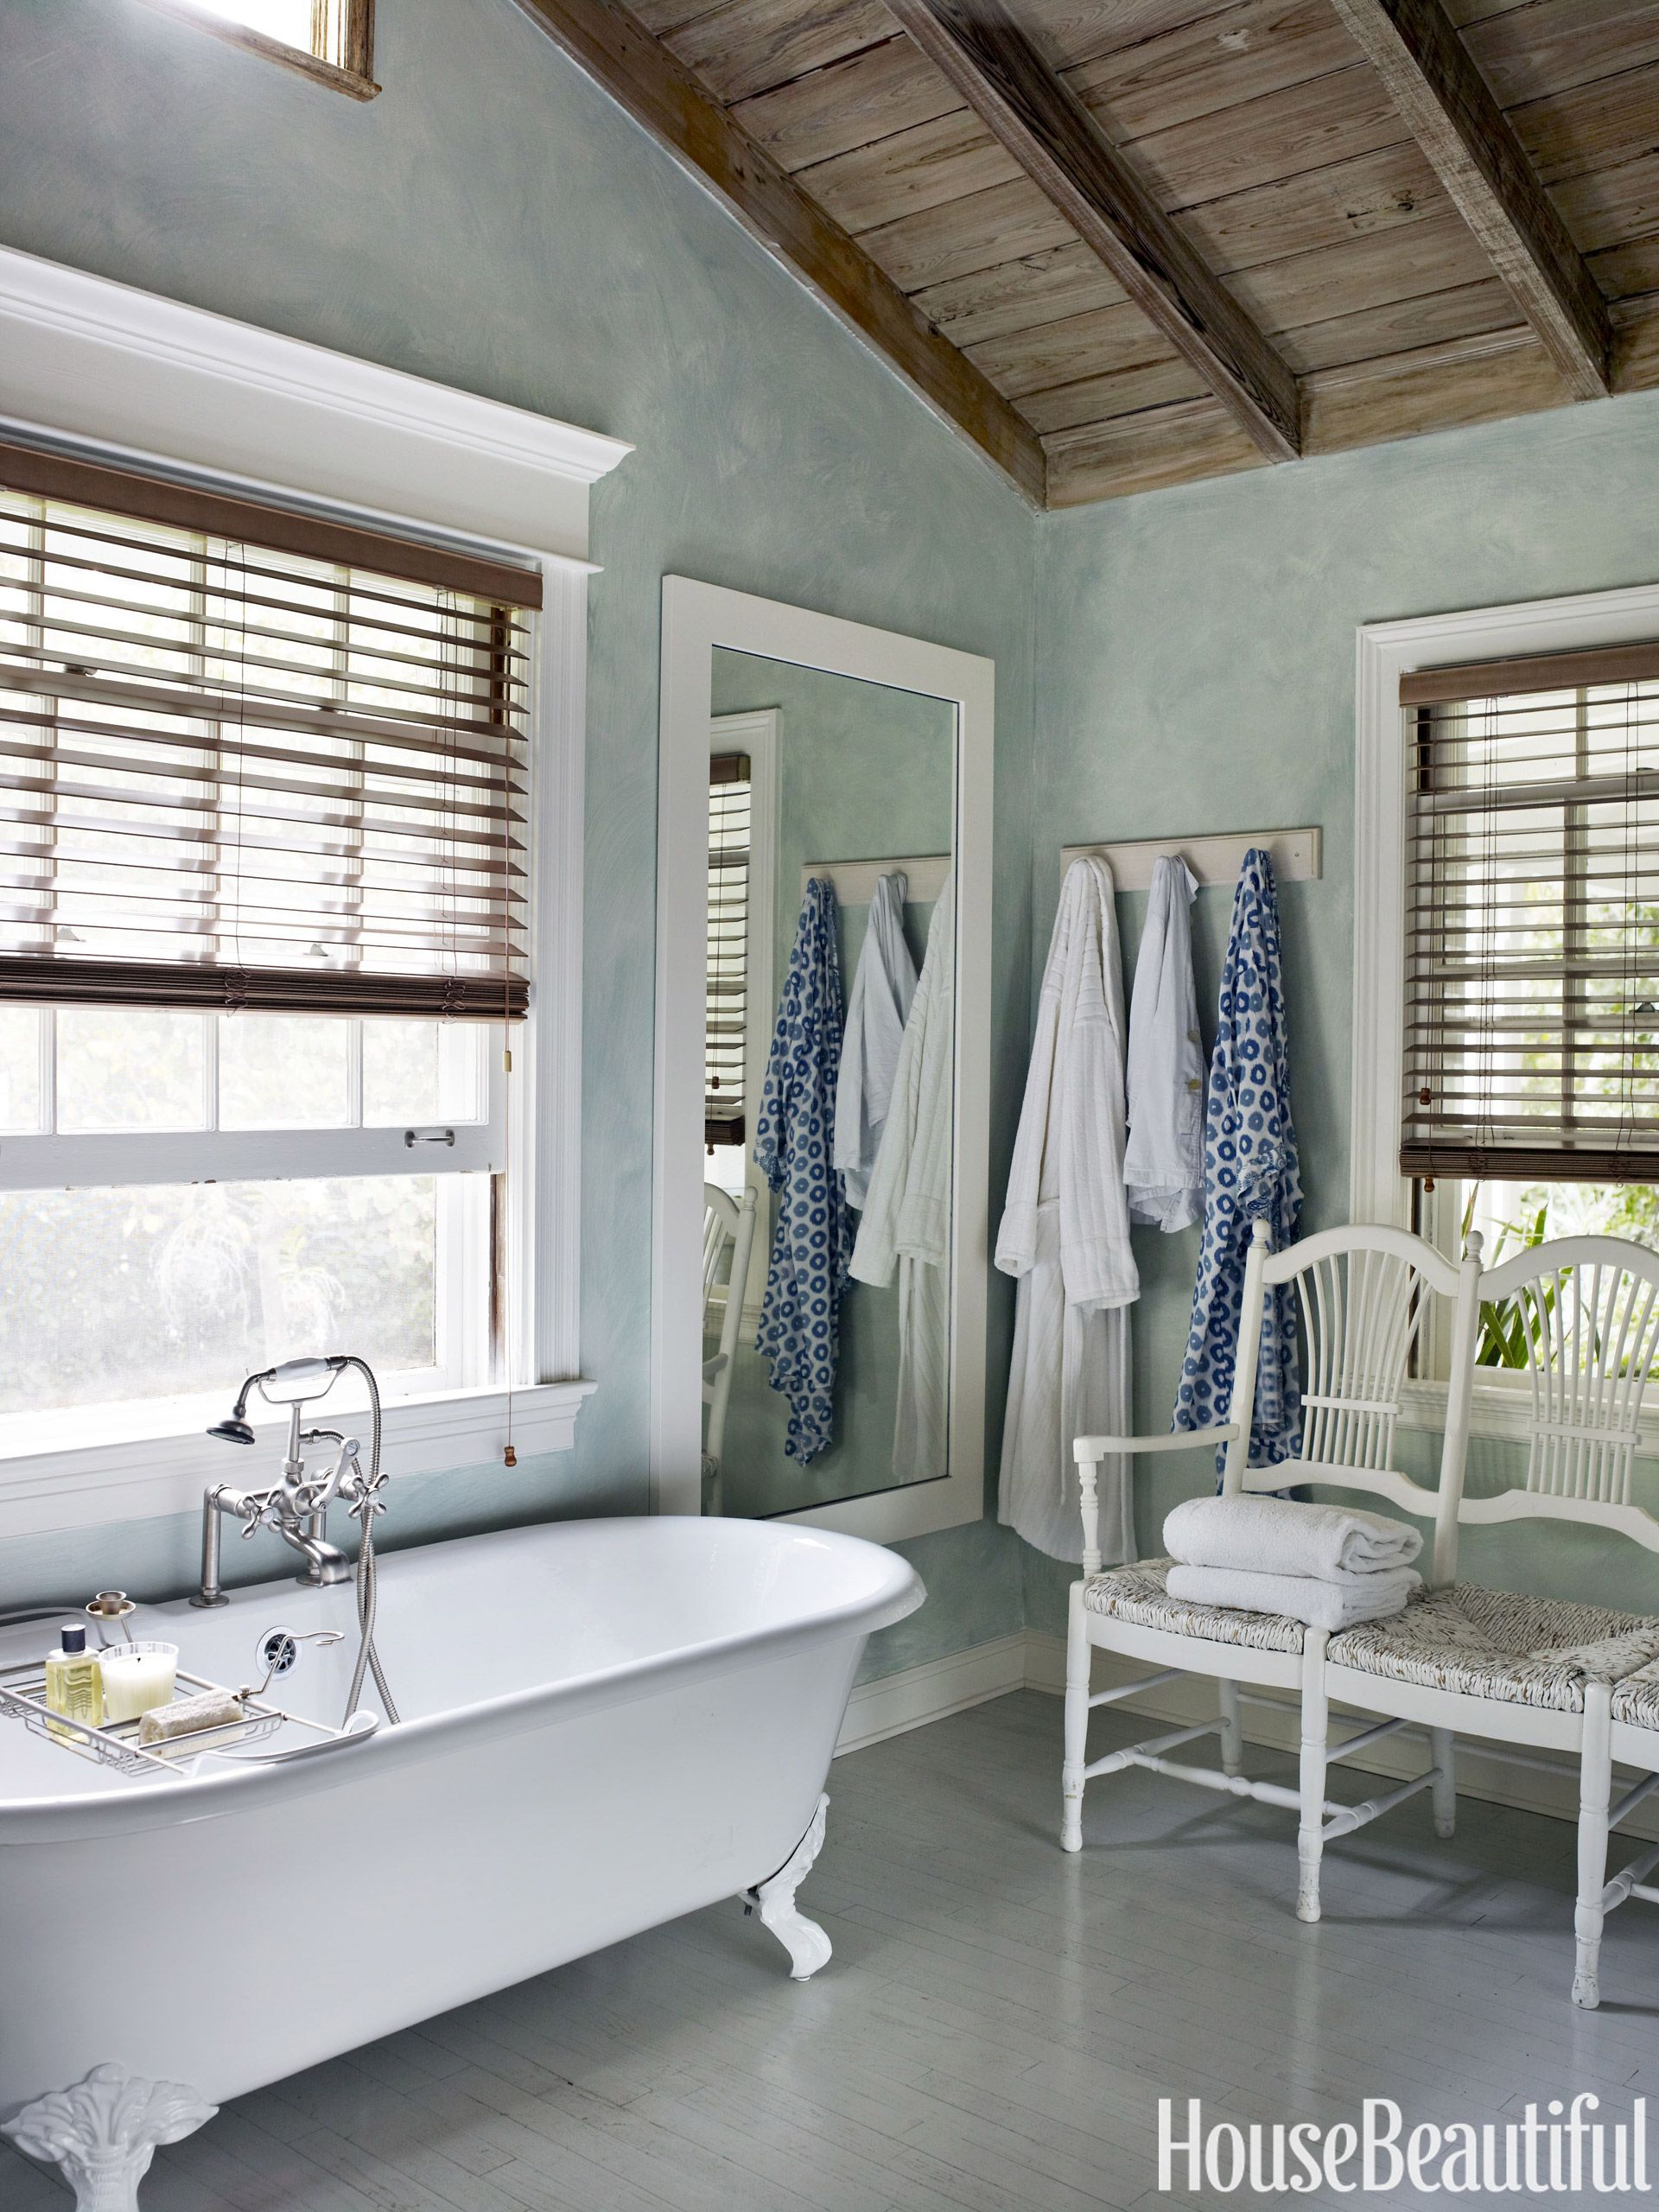 30 Master Bathroom Ideas And Pictures Designs For Master Bathrooms